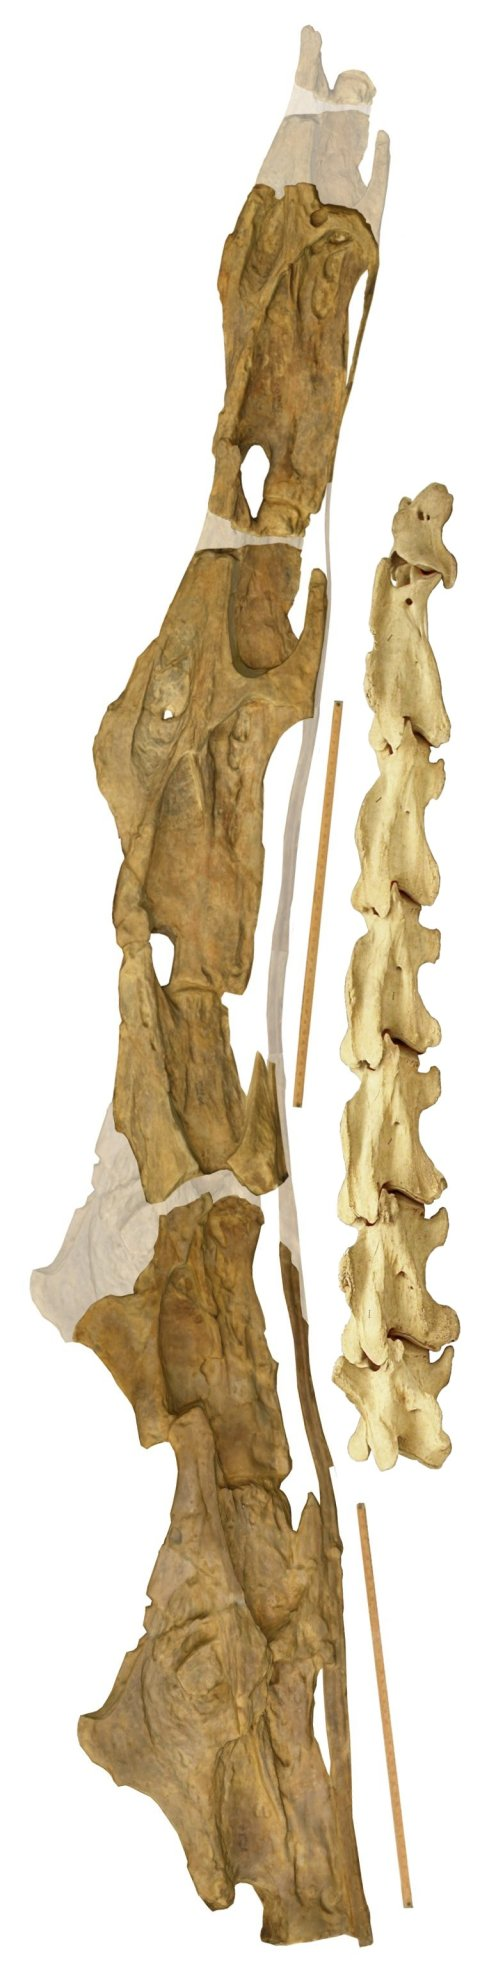 Sauroposeidon OMNH 53062 articulated right lateral composite with giraffe